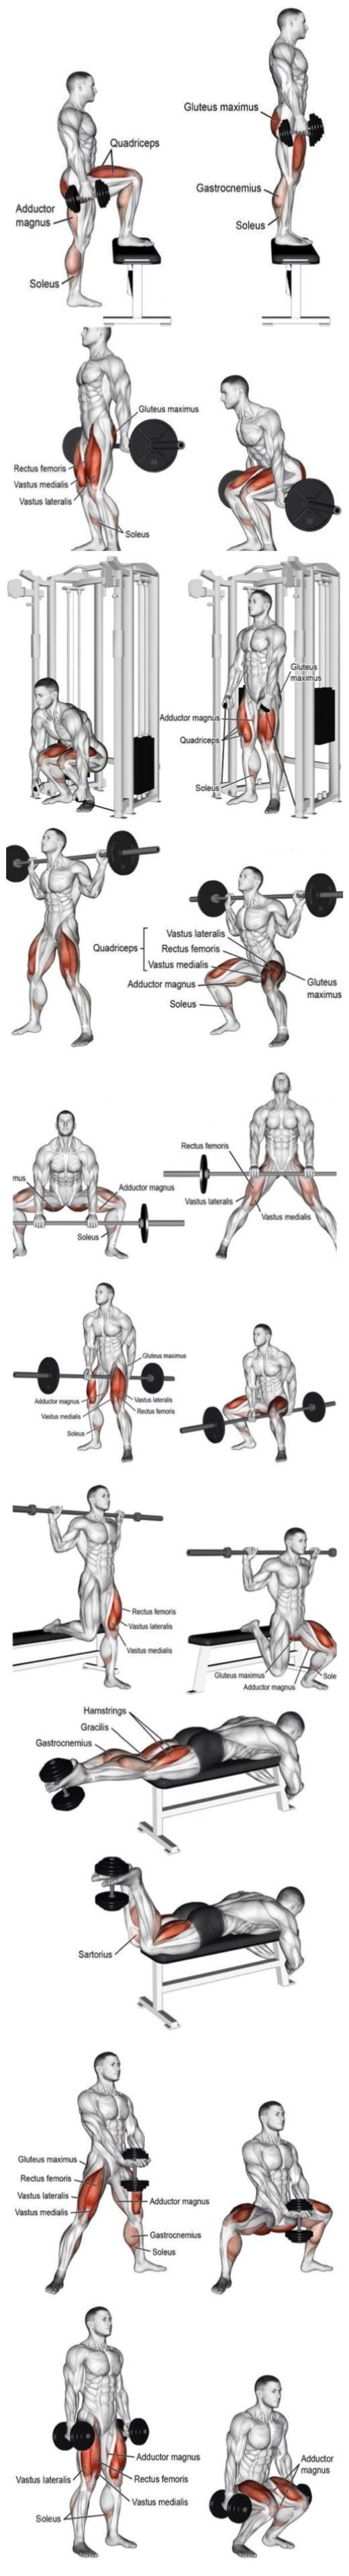 SWAGGER (Psoas Trigger Points Watches) Most glute focus- sumo squats and sumo deadlifts, then bulgarian split squats